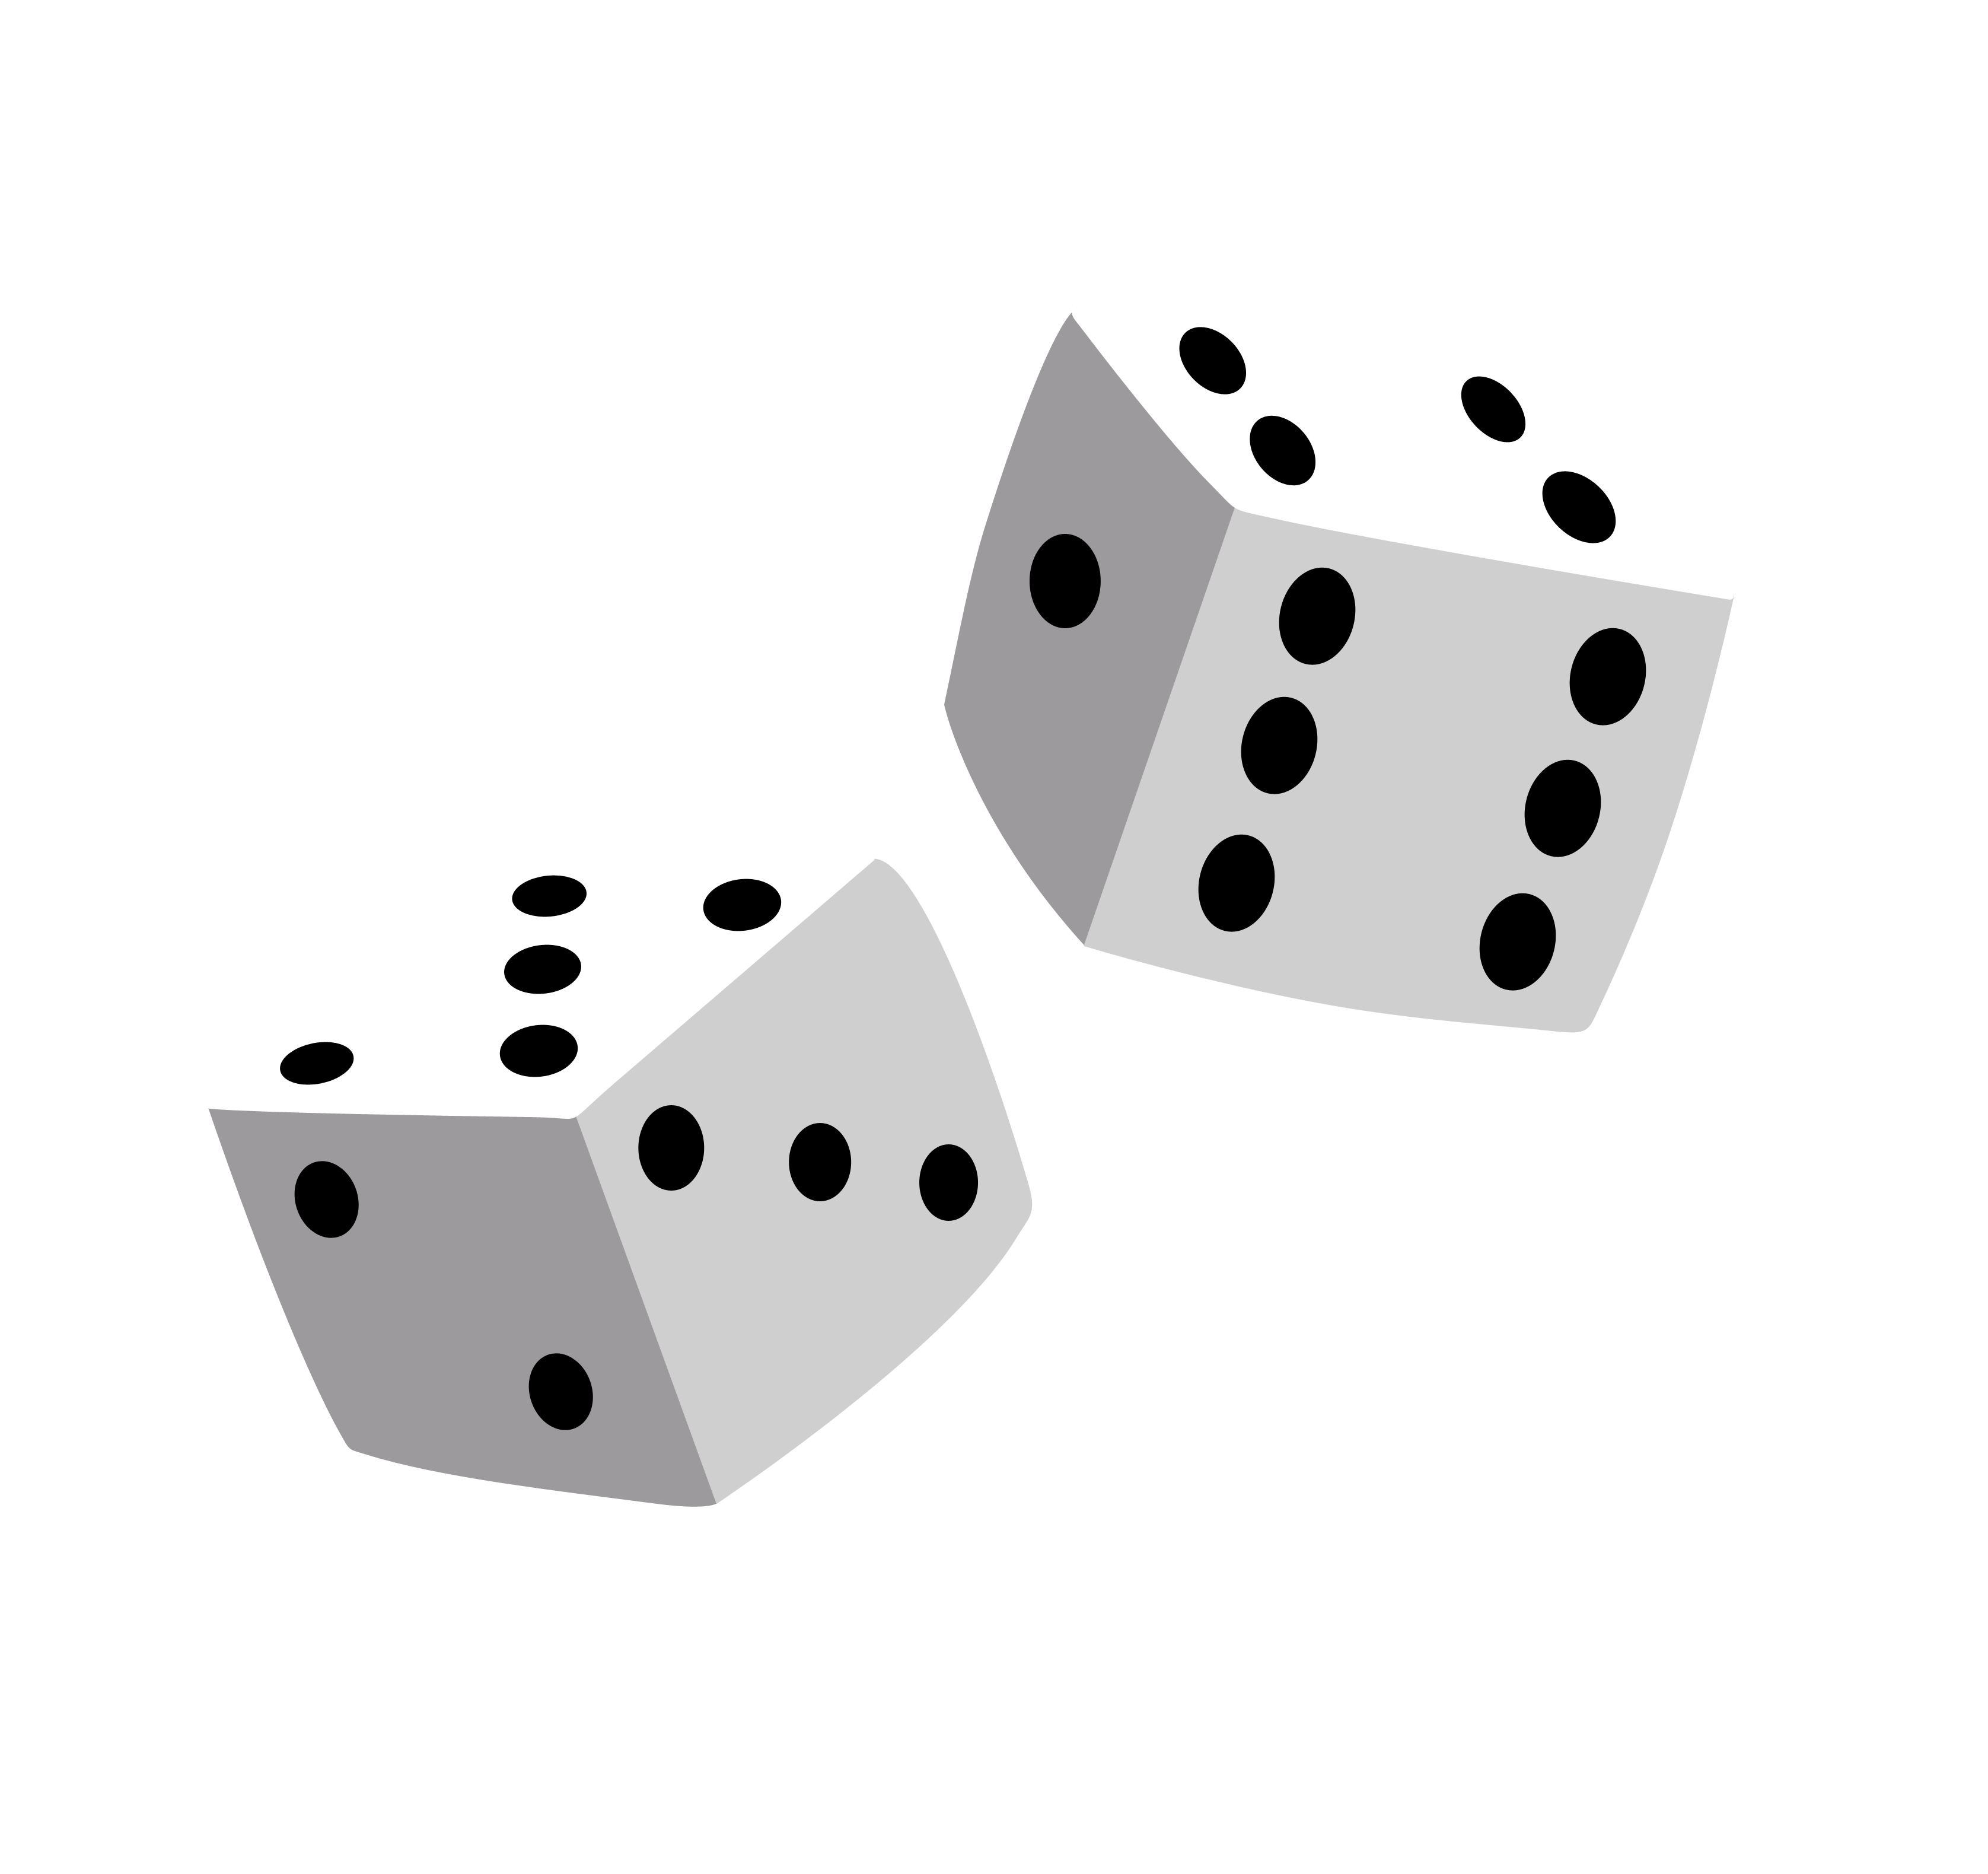 3352x3159 Dice Picture Clipart